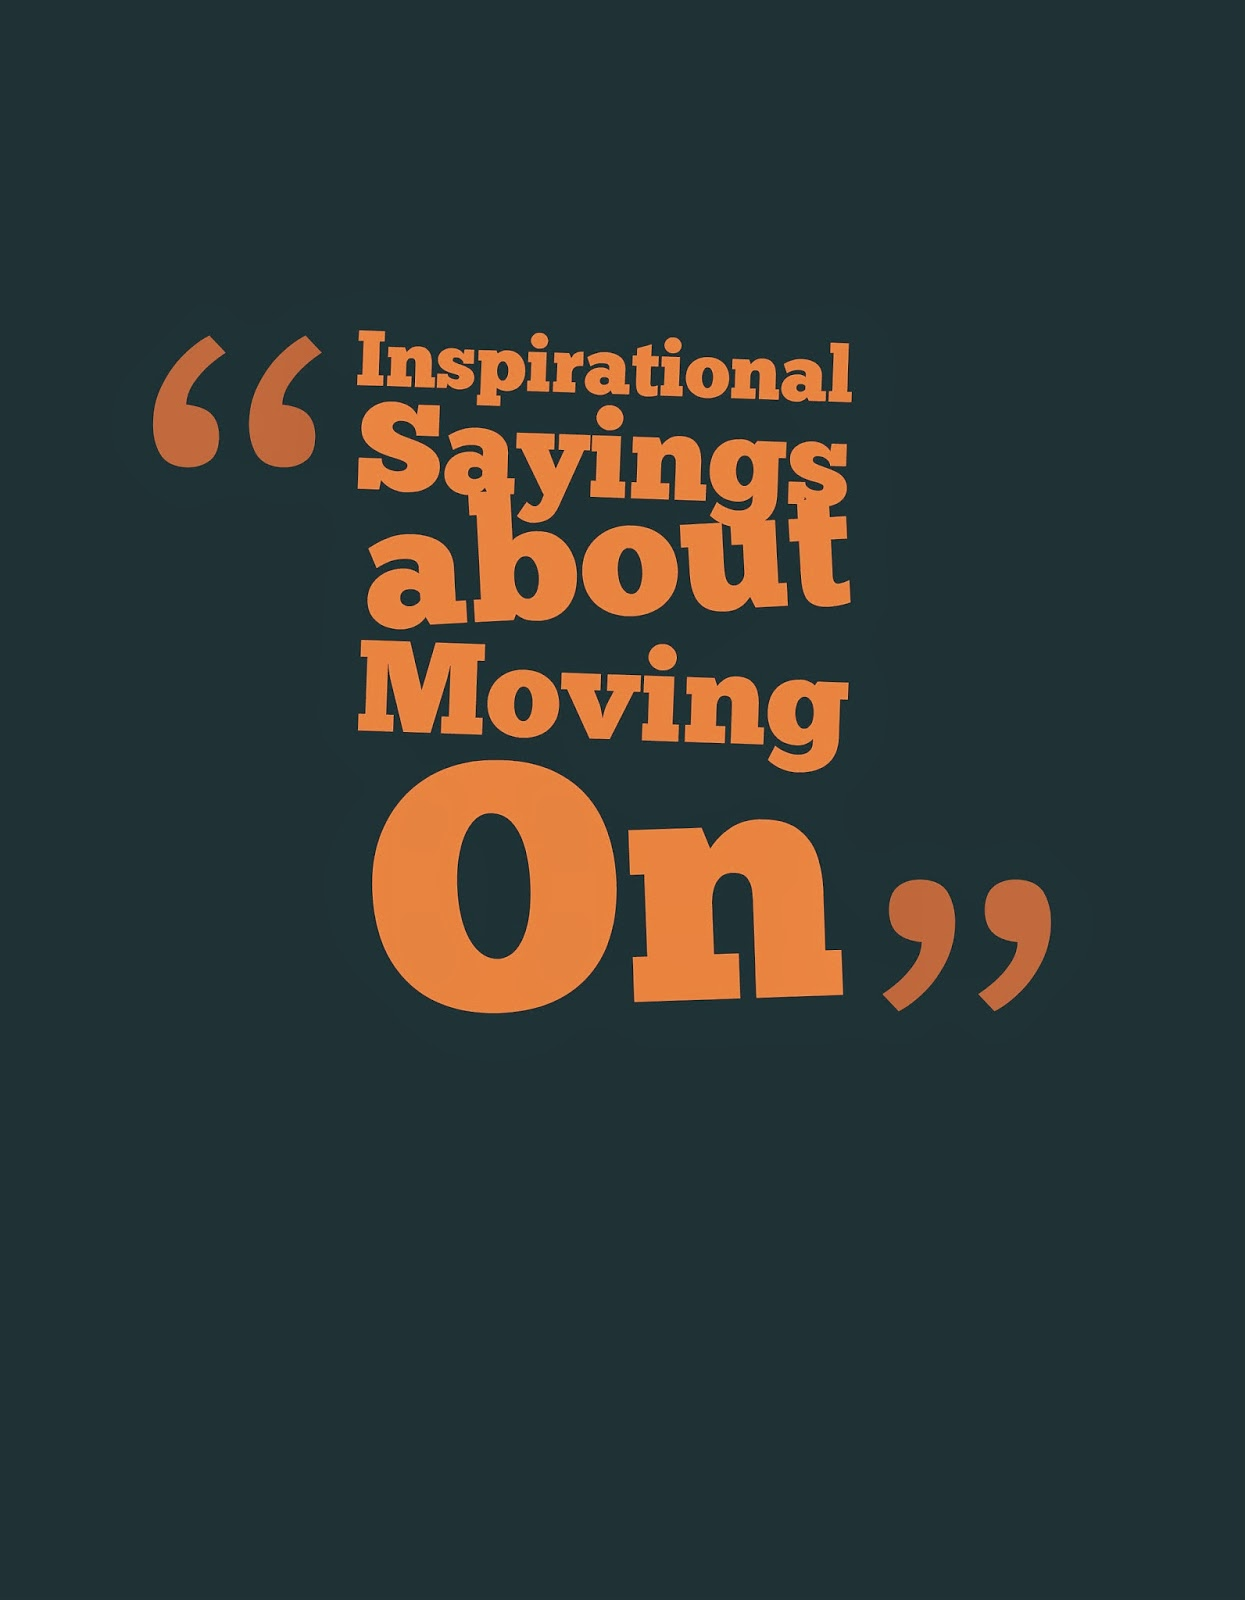 Moving Up Quotes And S...